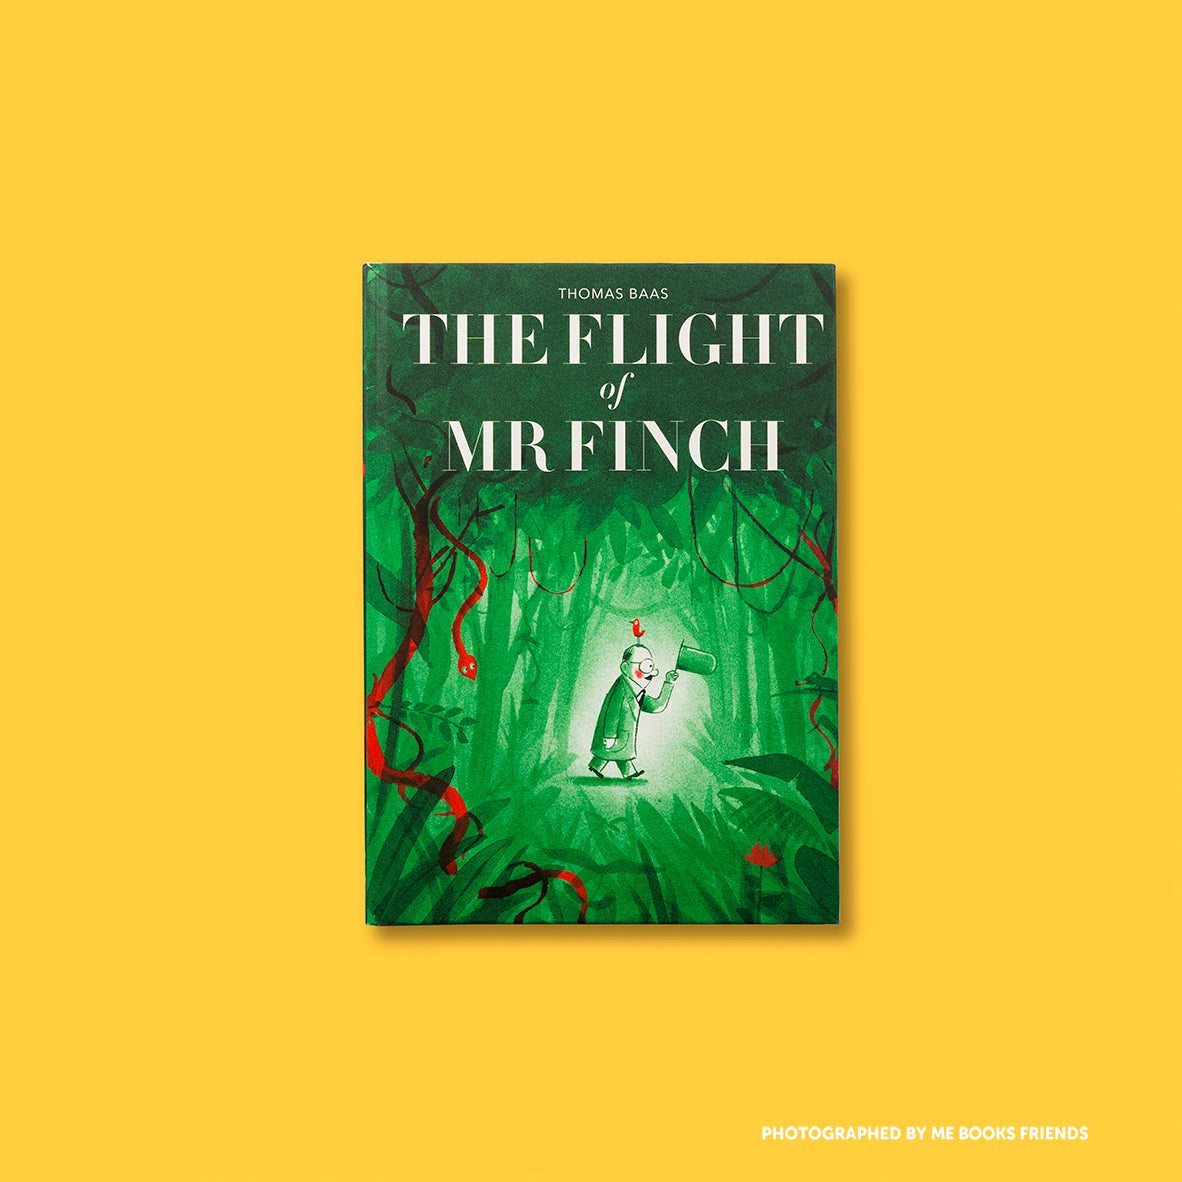 The Flight of Mr Finch - 9781849765909